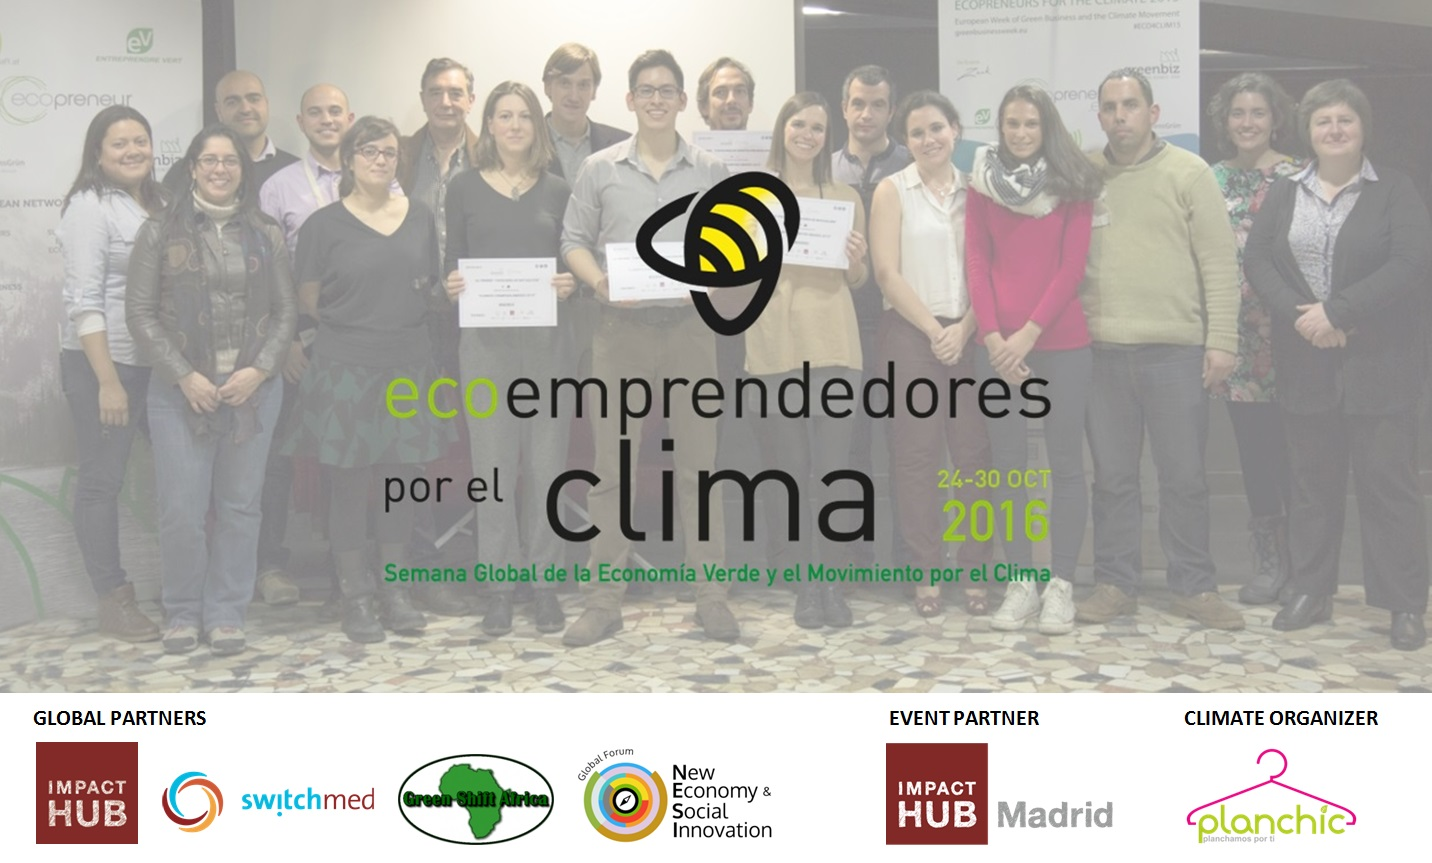 eco4clim16-madrid-con-logos